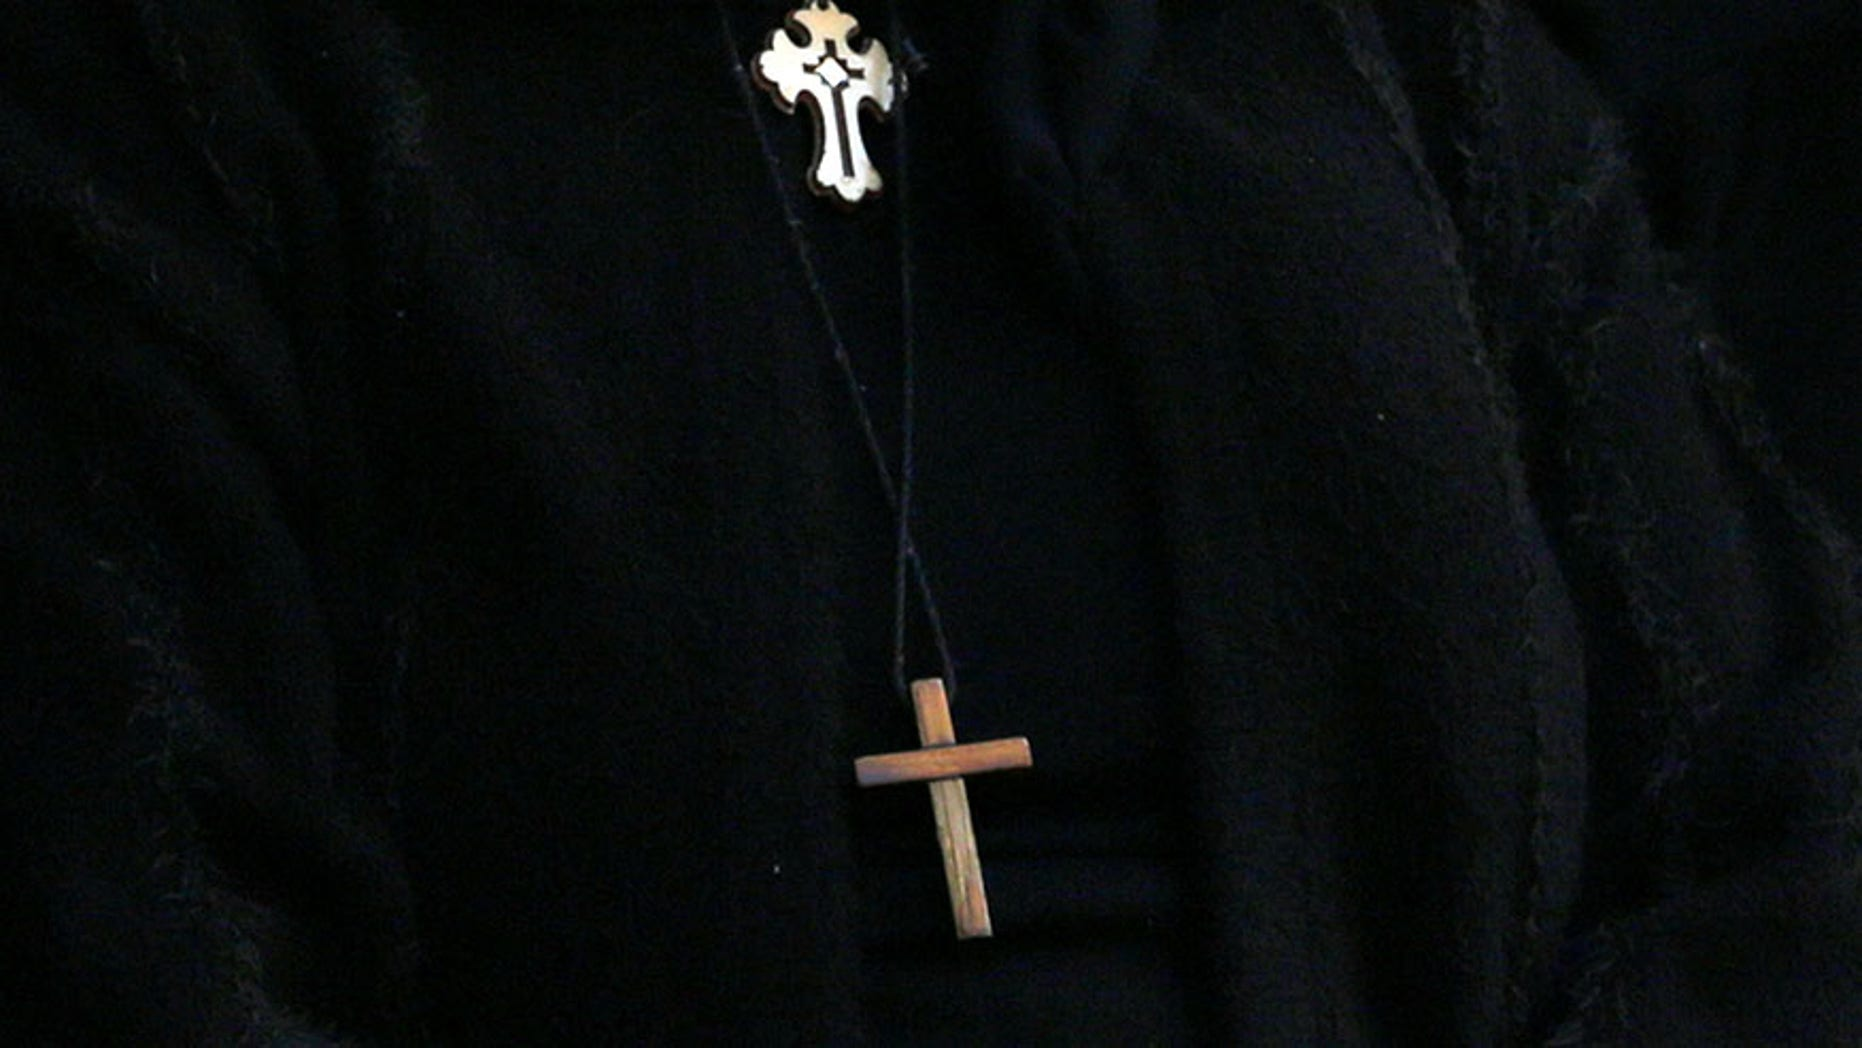 A cross is seen on the clothes of Egyptian Christians during the funeral of victims killed in the bombing of Cairo's Coptic cathedral, at the Mokattam Cemetery in Cairo, Egypt December 12, 2016. REUTERS/Amr Abdallah Dalsh - RTX2UP8B